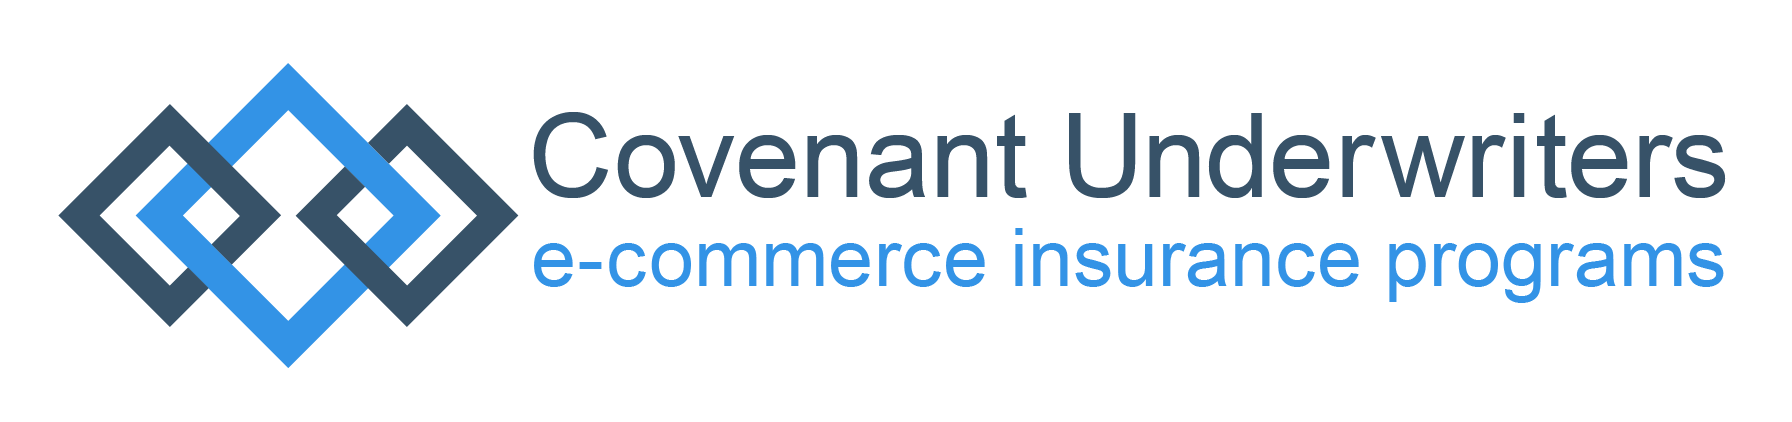 Covenant Underwriters